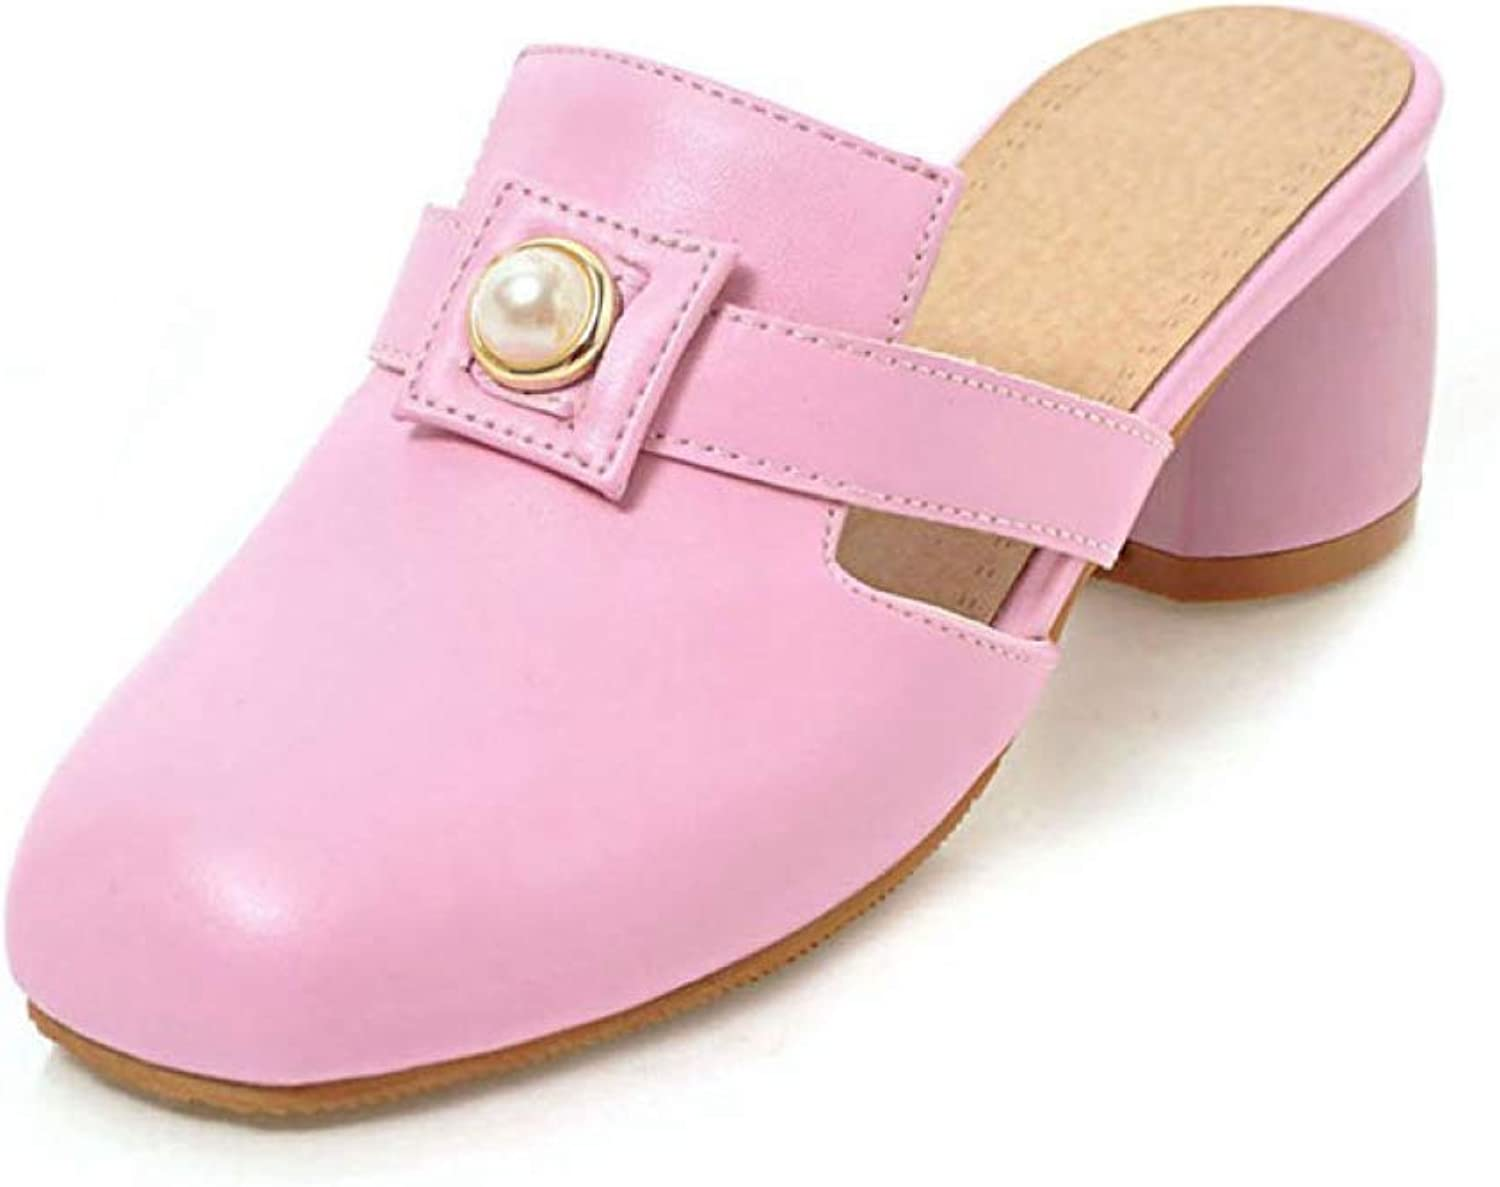 T-JULY Summer Mules Pumps shoes for Women Pearl Slip on Round Toe High Square Heels Slippers Ladies Casual shoes